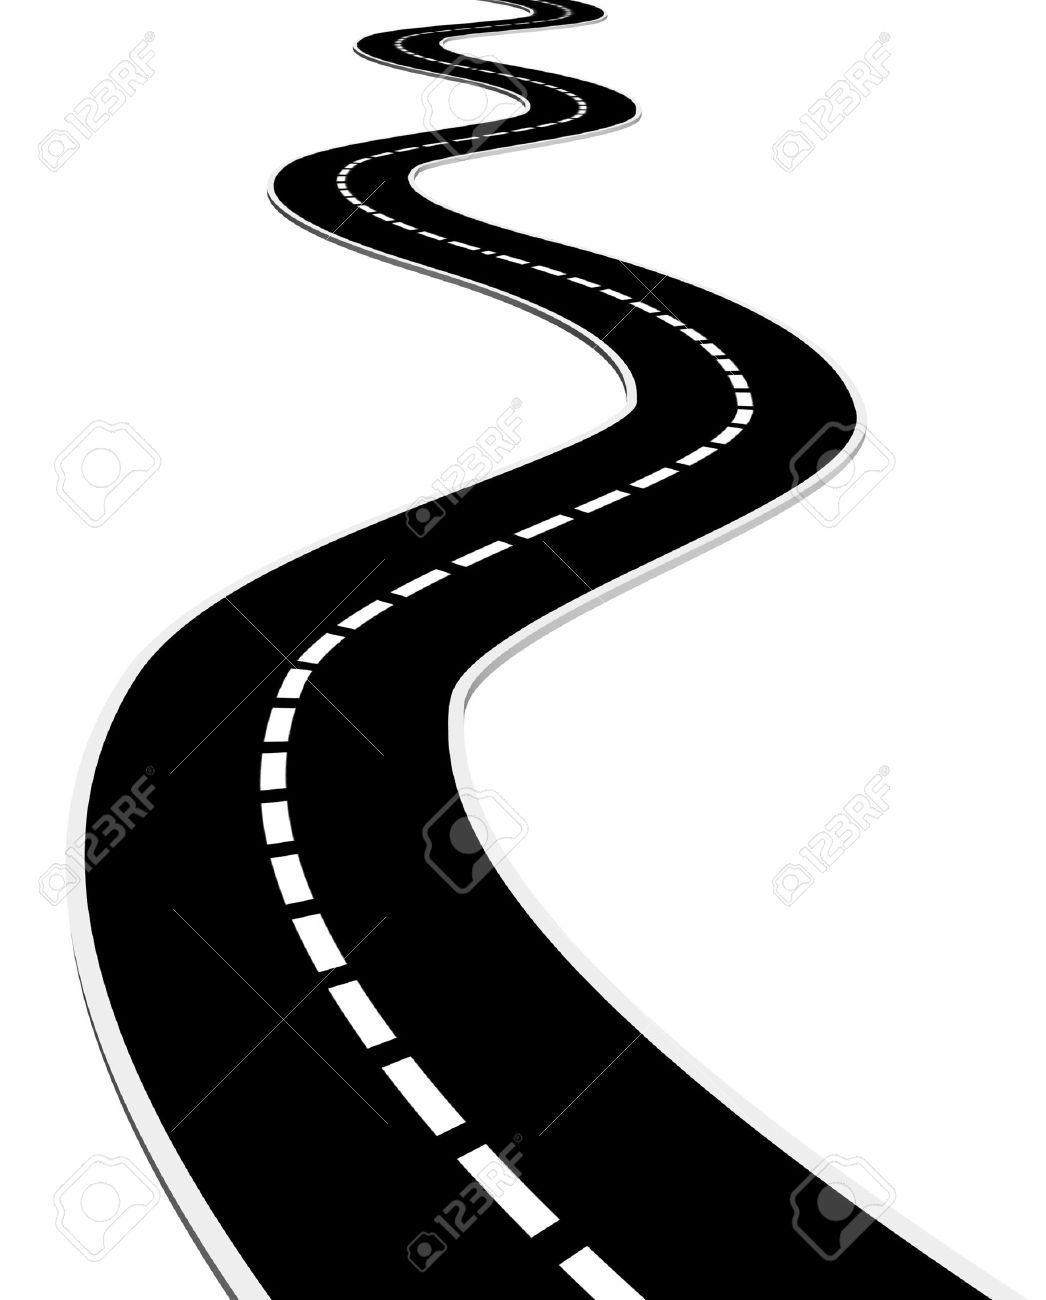 Highway clipart route. Road clip art in